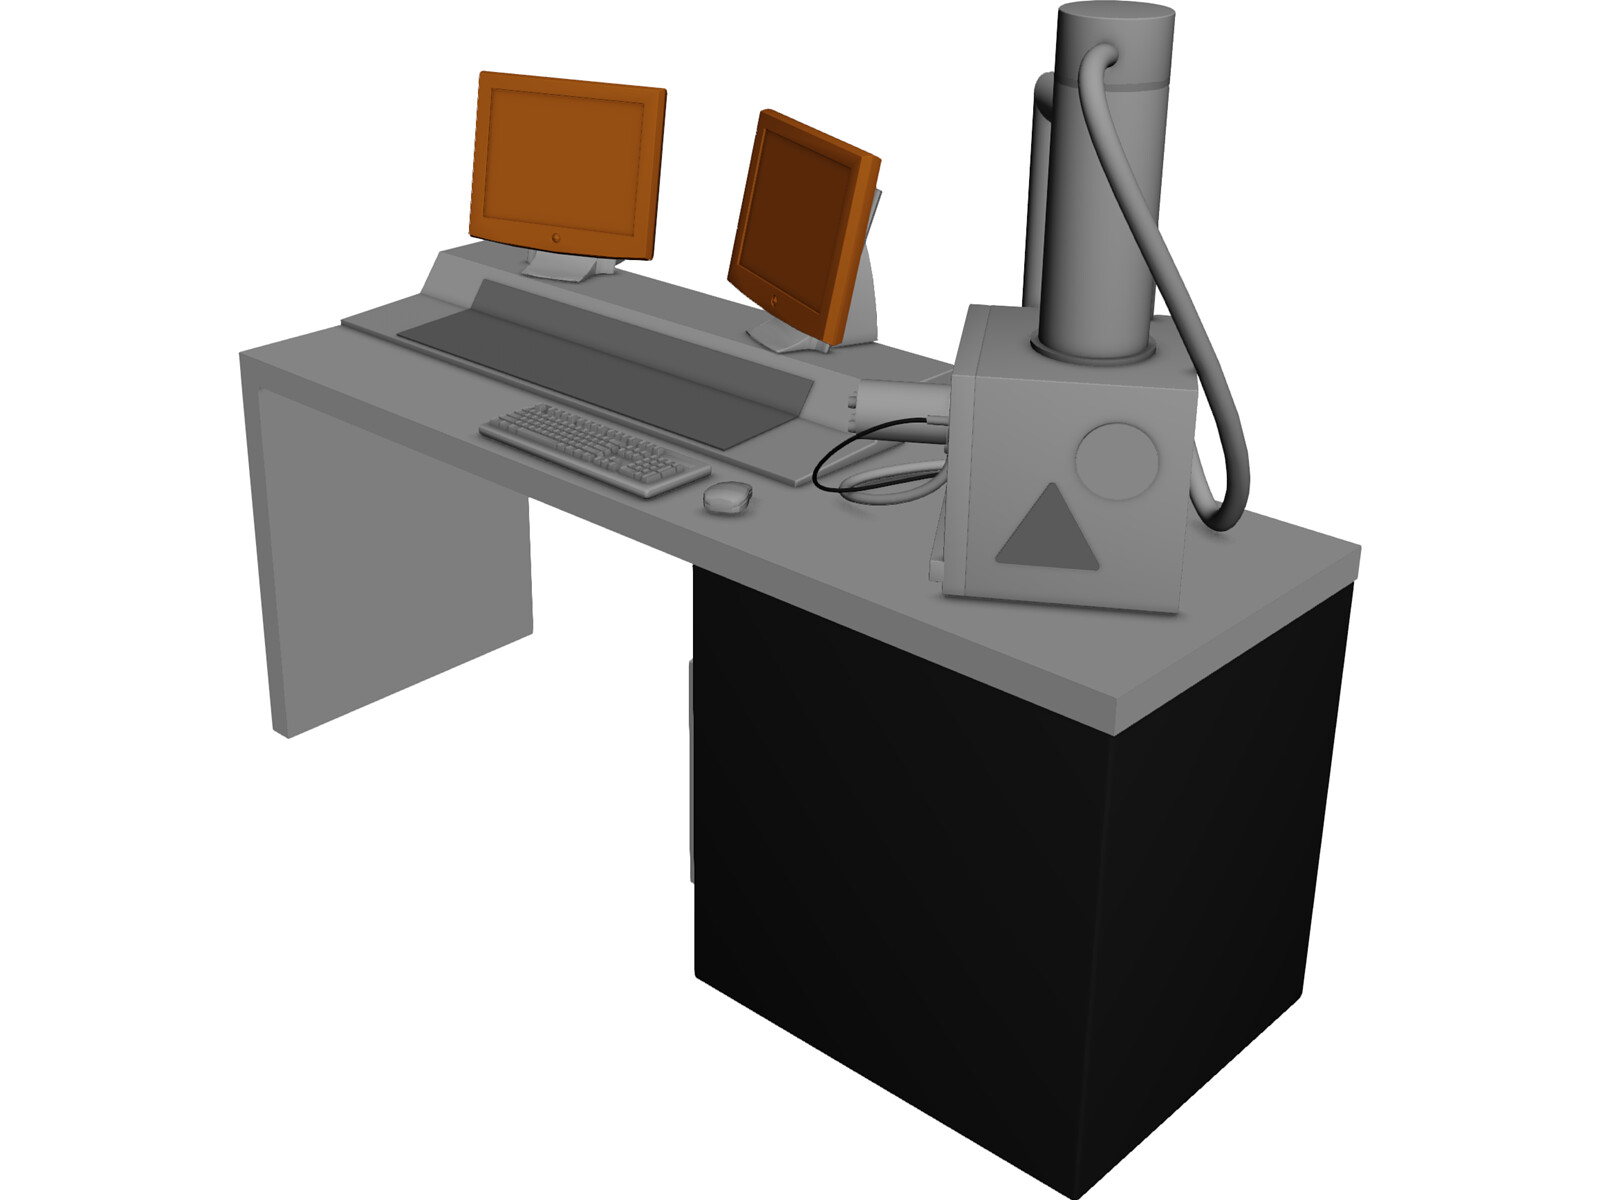 Scanning Electron Microscope 3D Model